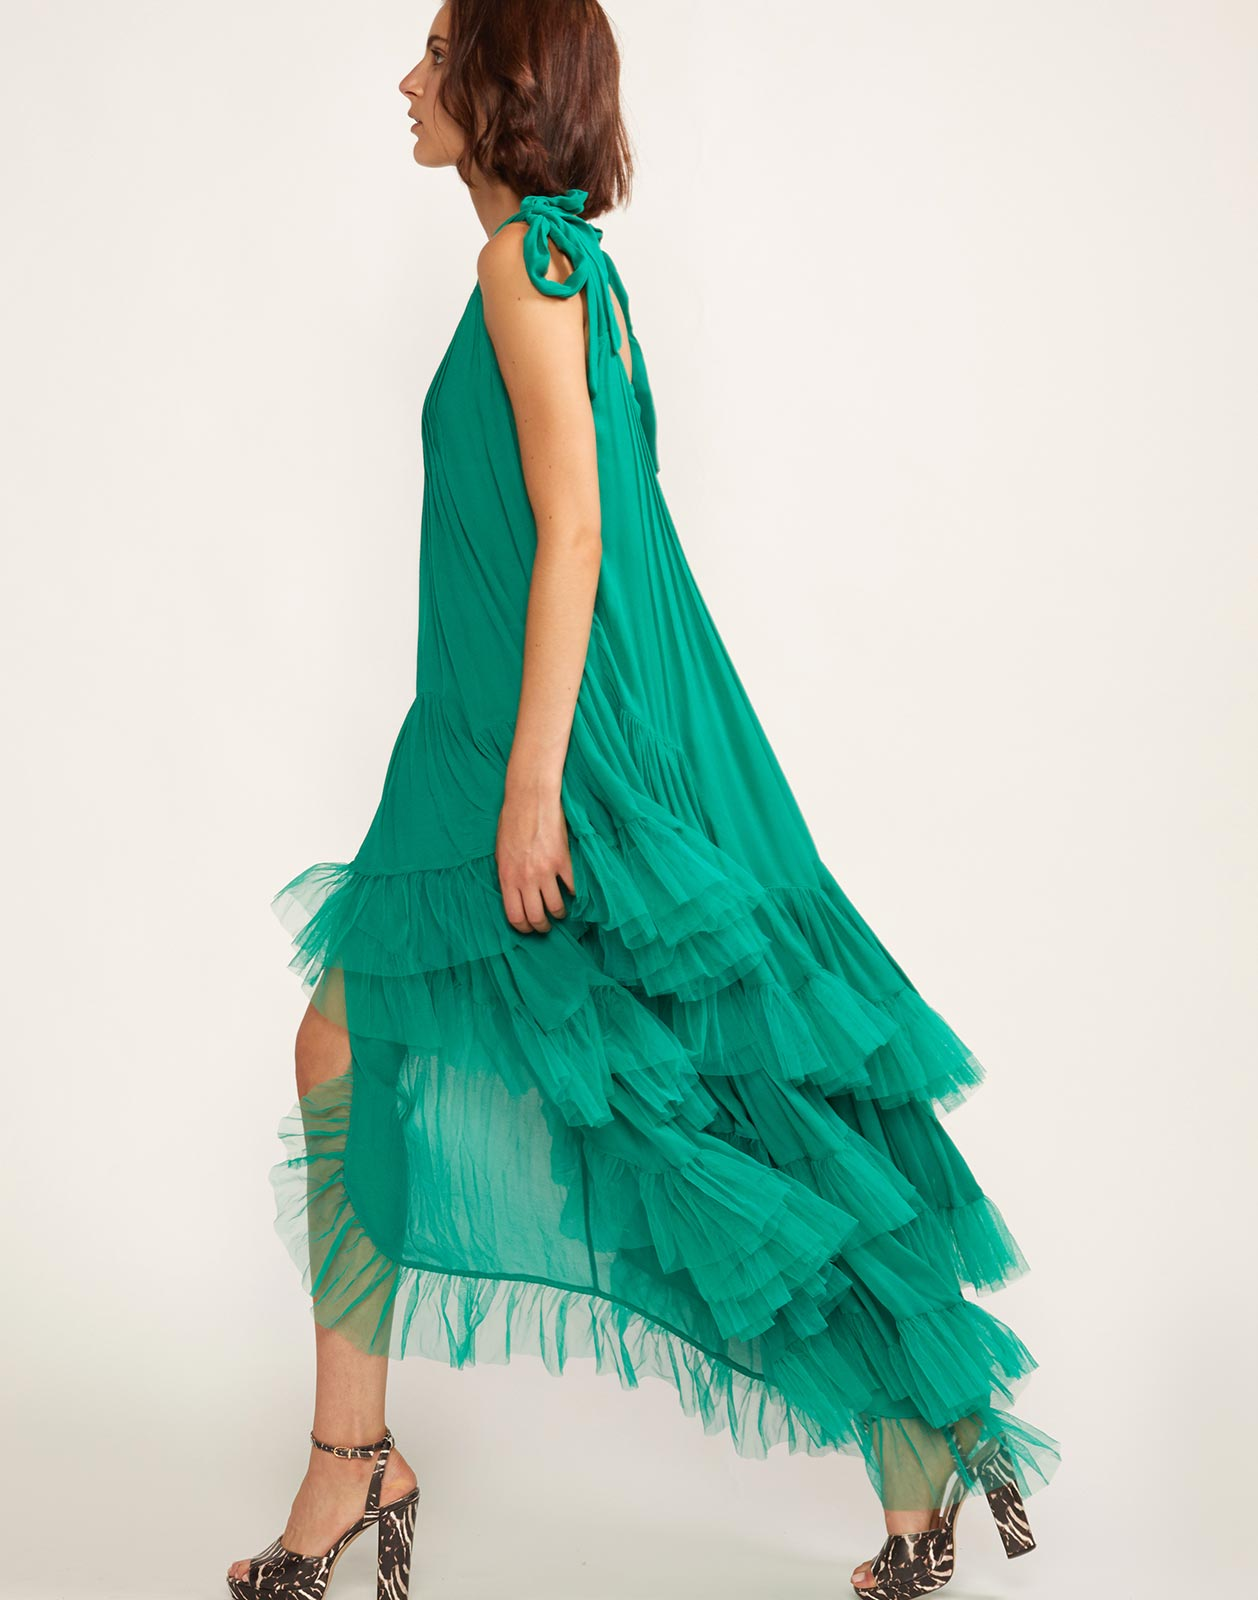 Side view of flounce dress with sheer tulle tiered ruffle bottom